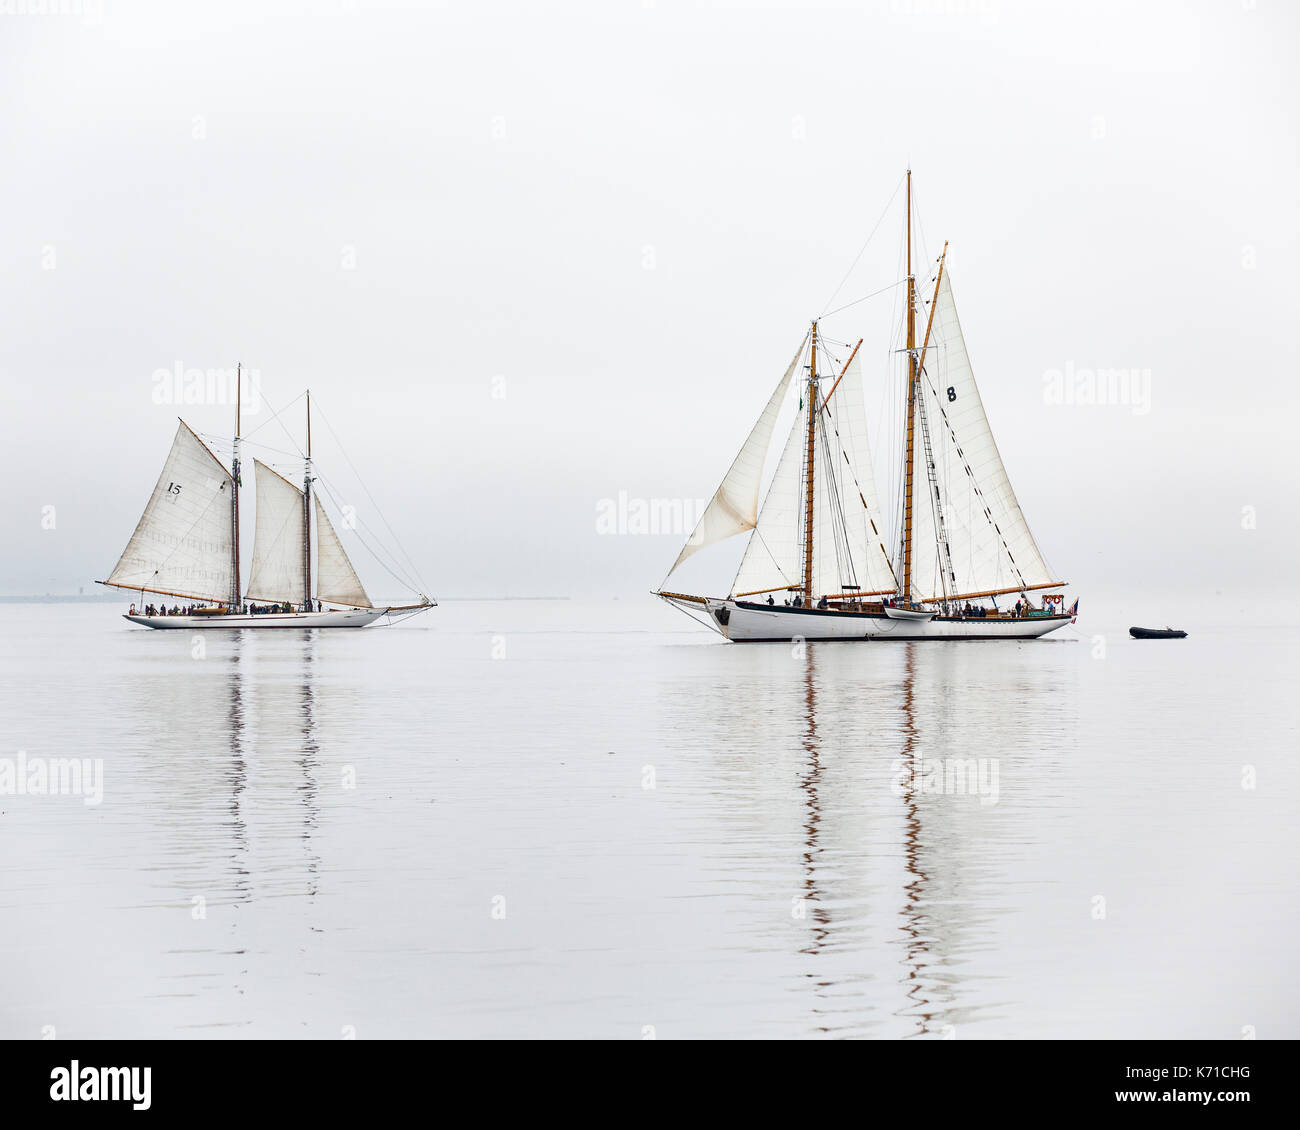 Sailing boat, sailboat wooden schooner yacht Port Townsend, Puget Sound, Washington. Sailing boat Adventuress and Zodiac in fog. - Stock Image